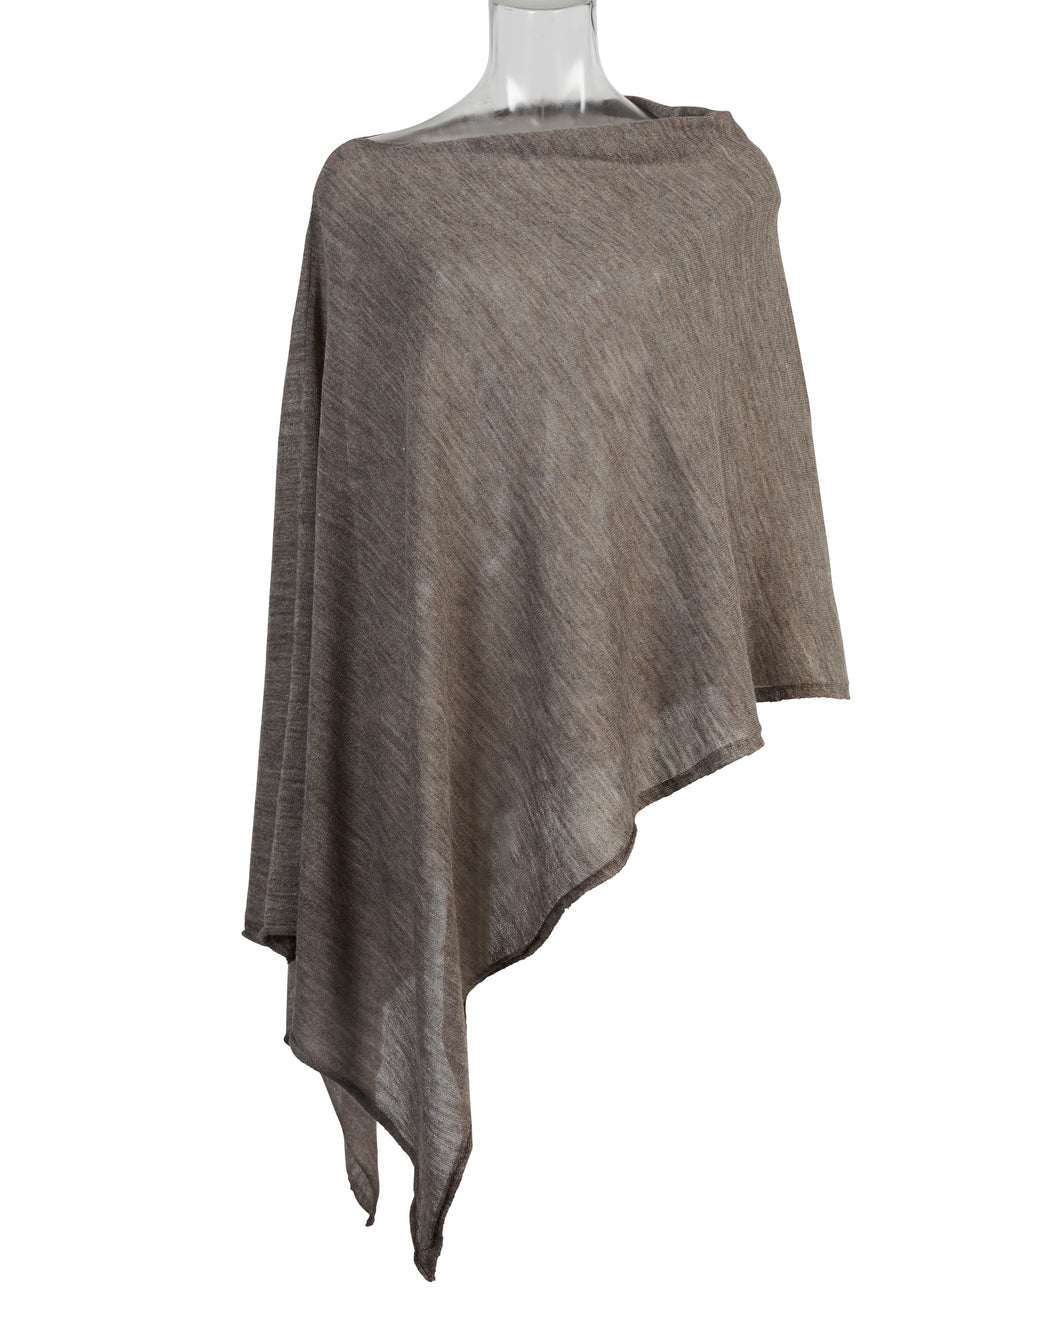 Kate and Confusion brown knit women's poncho